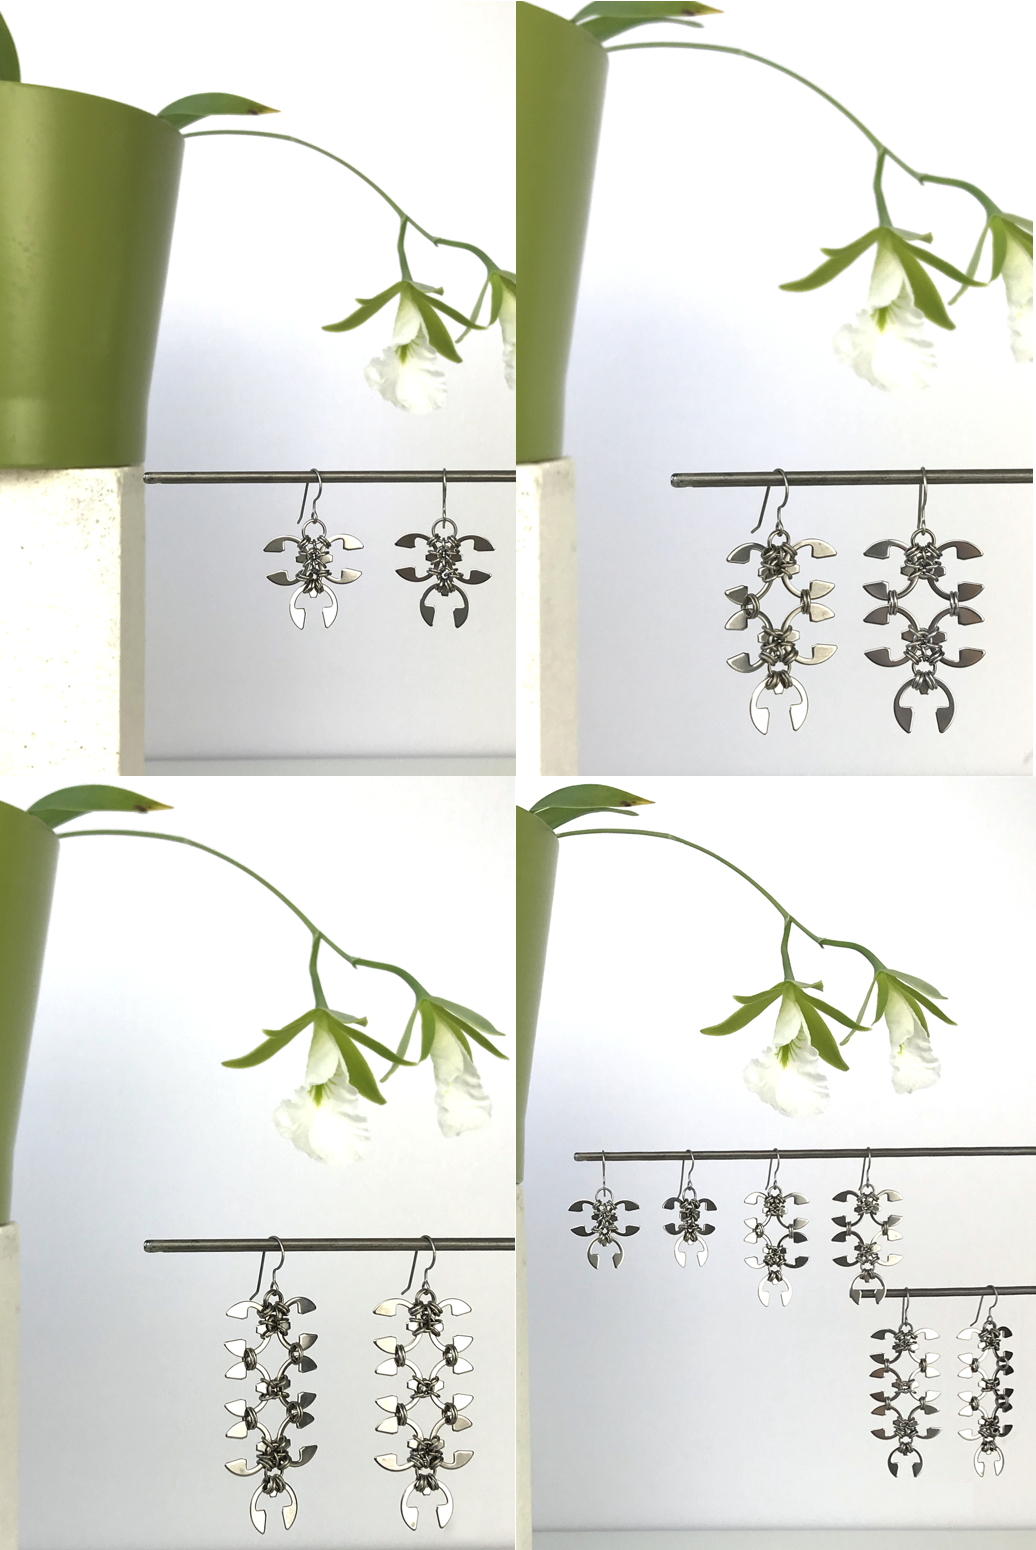 Compiled image of 4 photos, featuring Wraptillion's Ivy Earrings, Short Wisteria Earrings, and Long Wisteria Earrings with blooming orchid Encyclia mariae.